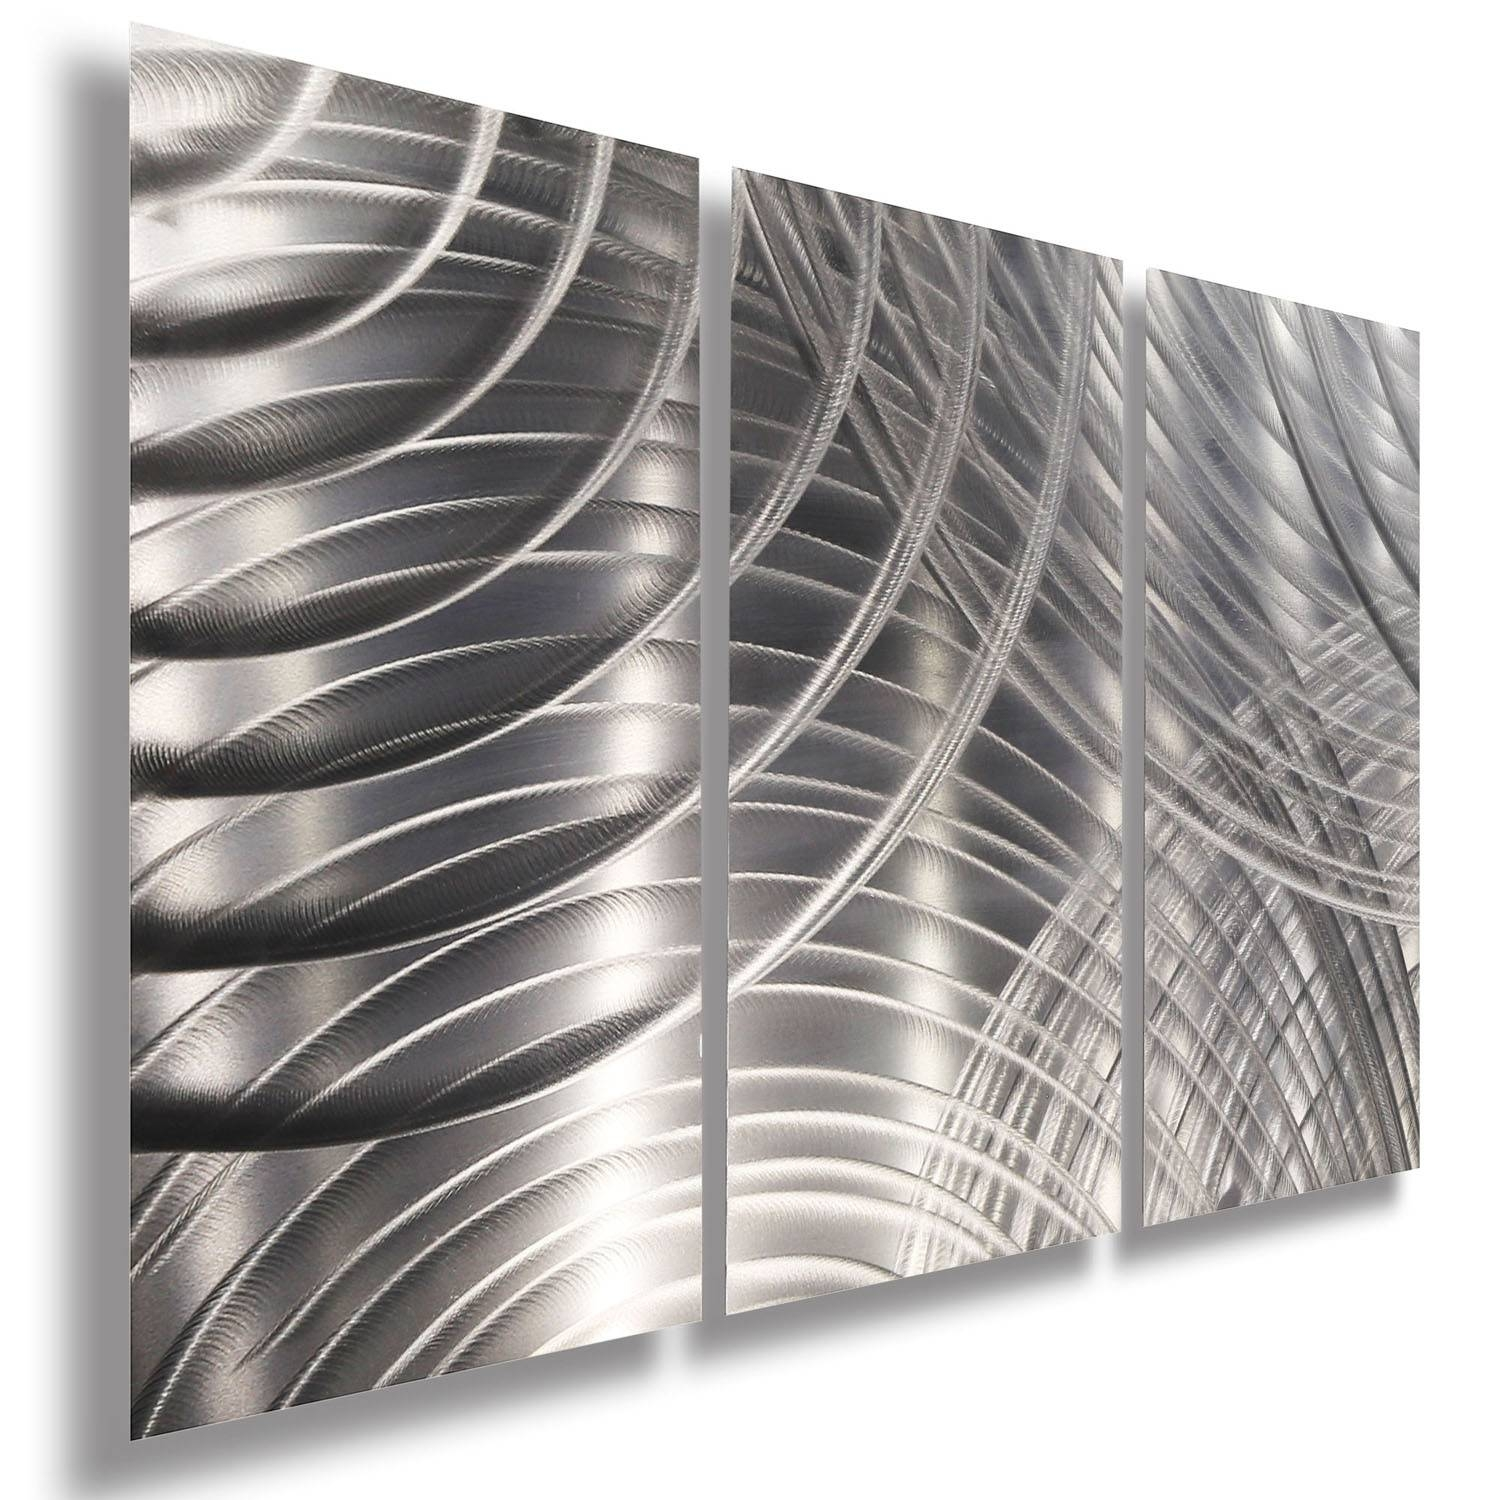 Equinox Ii 3P – All Silver 3 Panel Metal Wall Art Accentjon With Regard To Best And Newest Etched Metal Wall Art (Gallery 5 of 20)